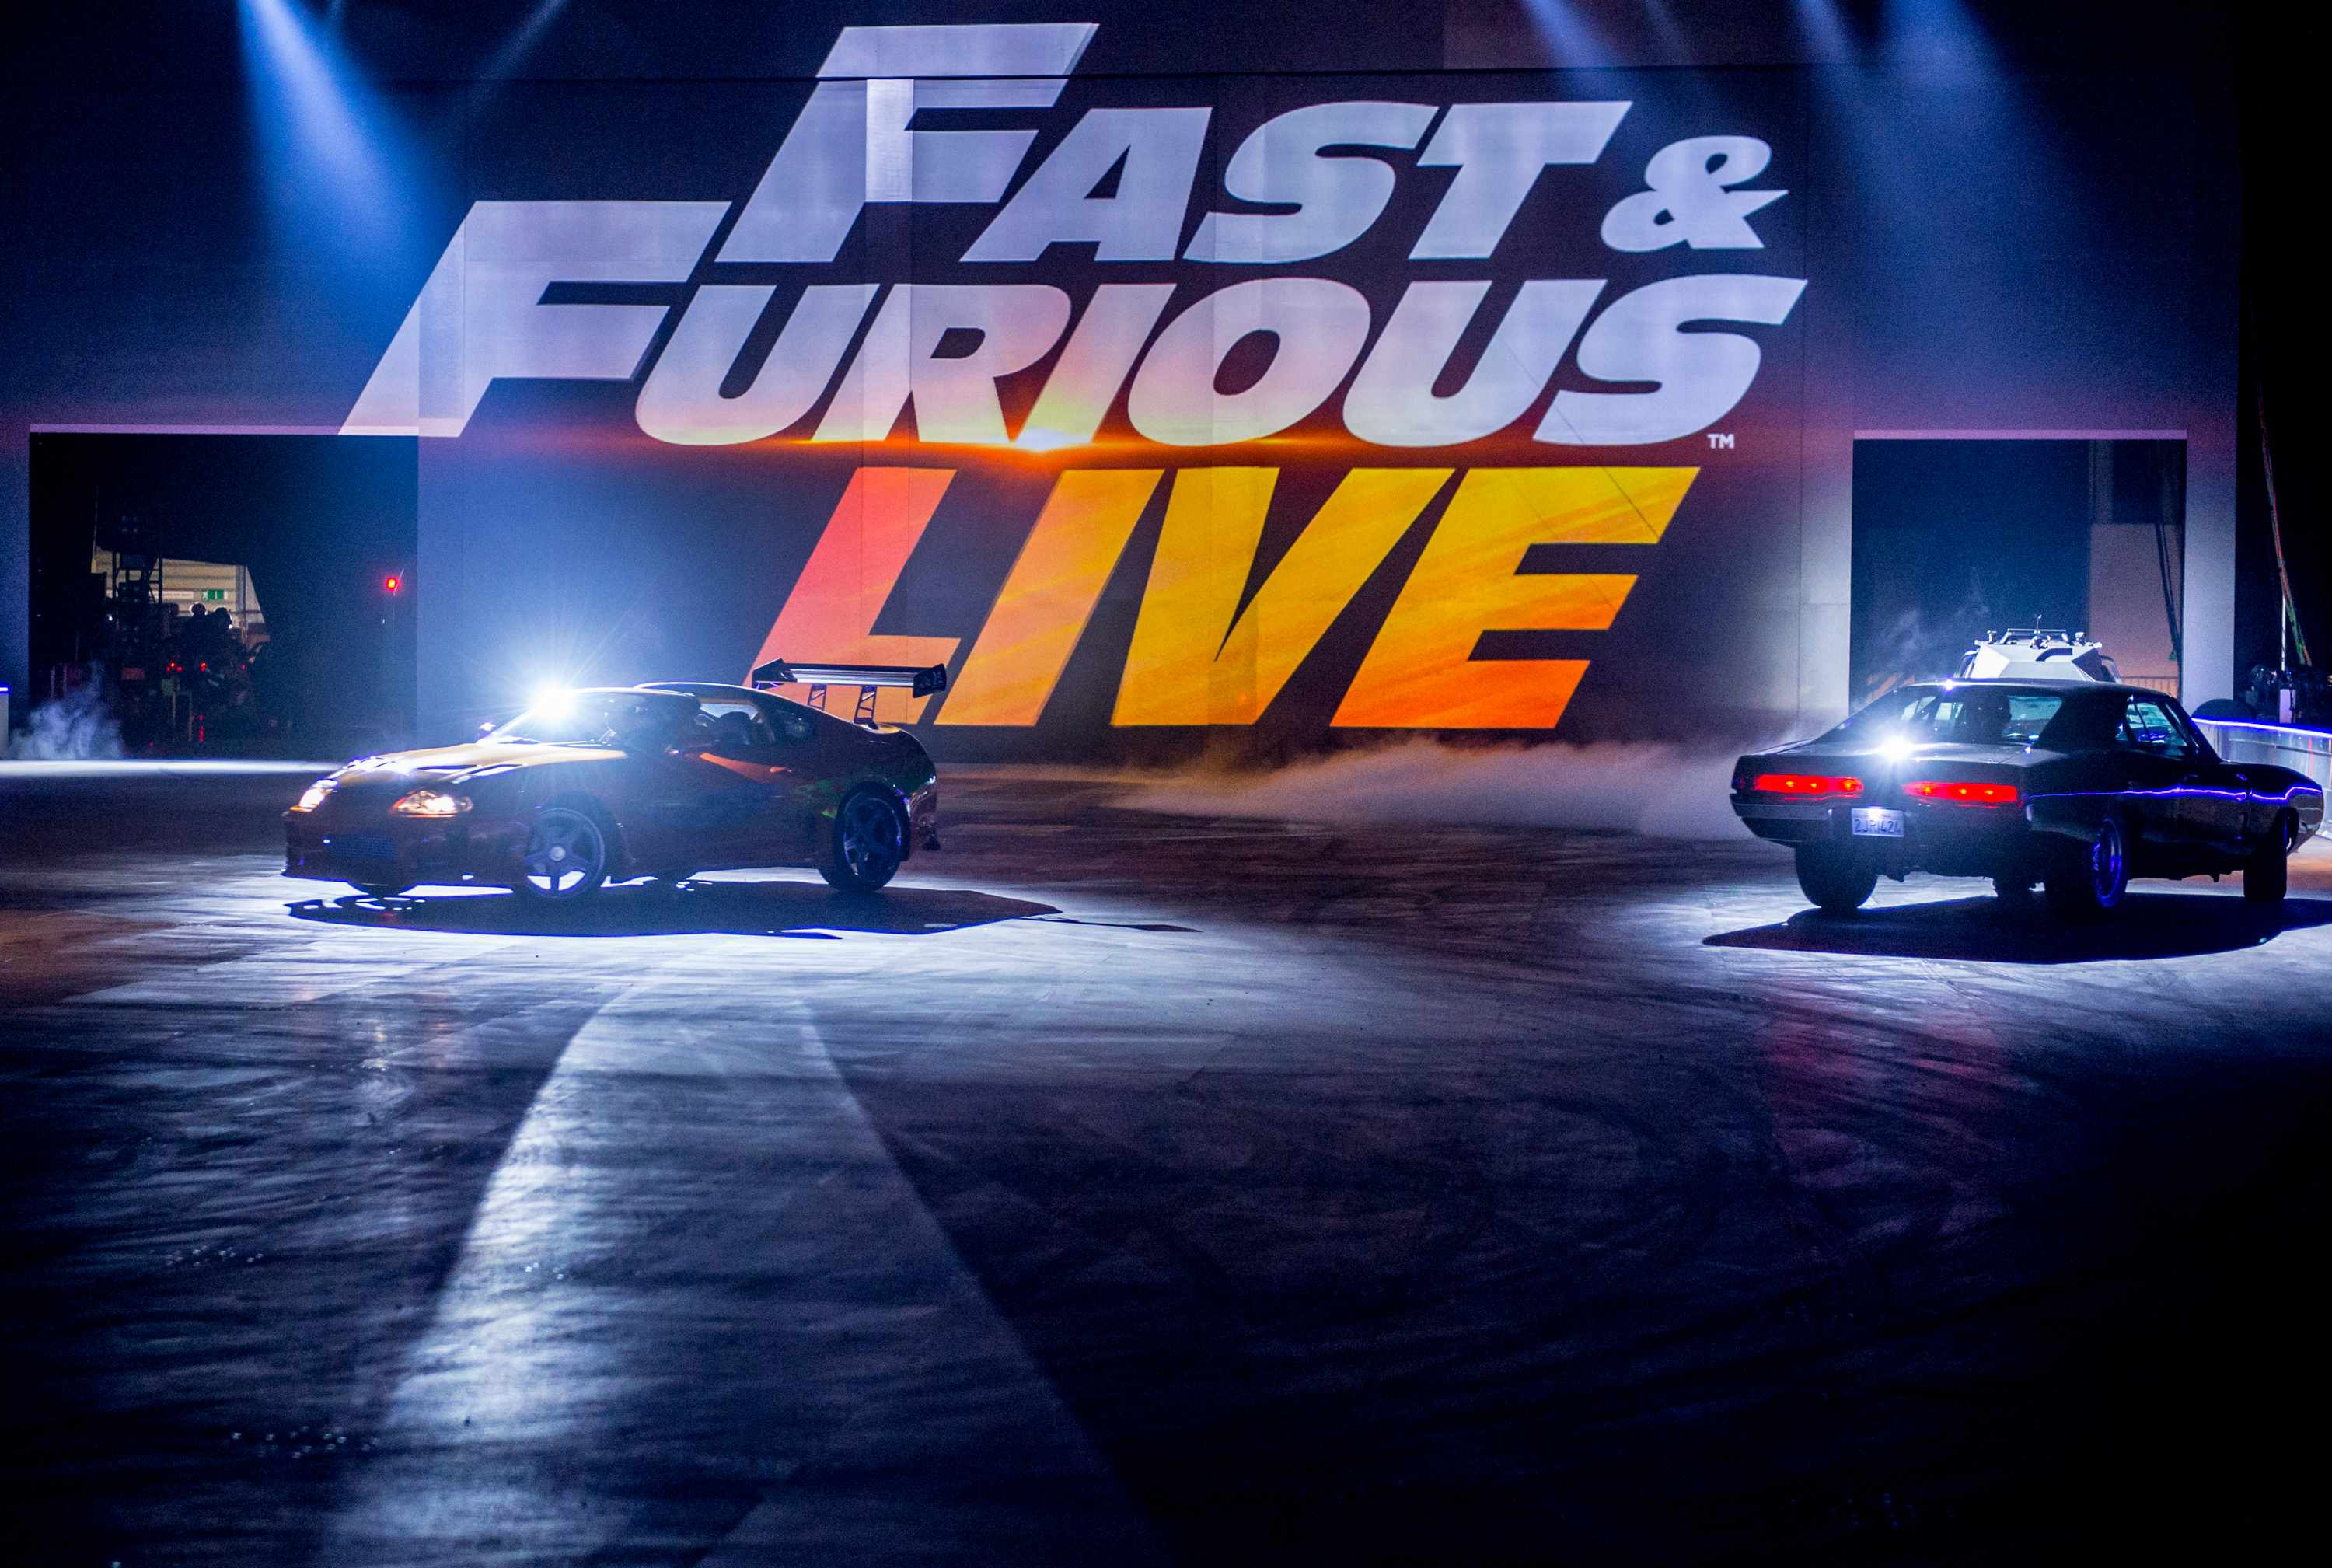 Fast & Furious Live (Getty, MH)